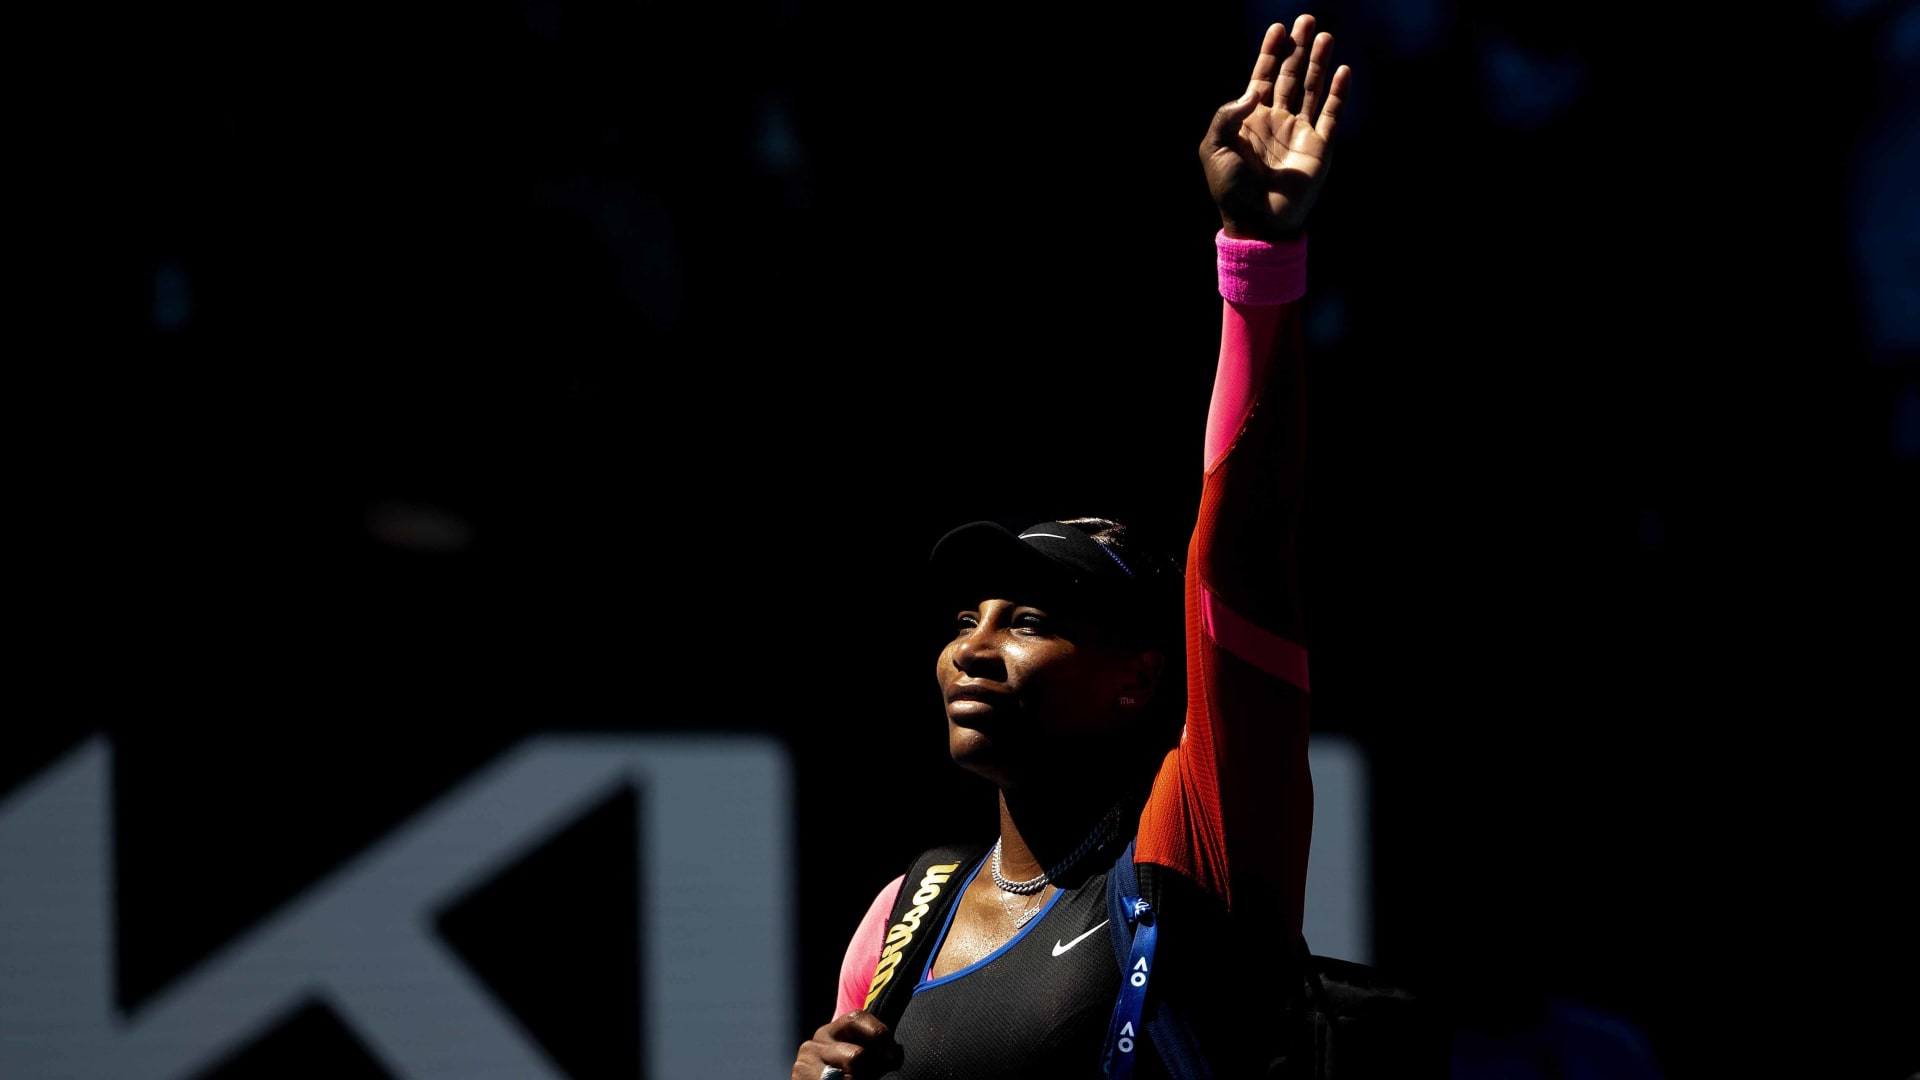 Serena Williams of the United States waves goodbye to the crowd following her defeat in the Women's Singles Semifinals match against Naomi Osaka of Japan during day 11 of the 2021 Australian Open on February 18, 2021 in Melbourne, Australia.